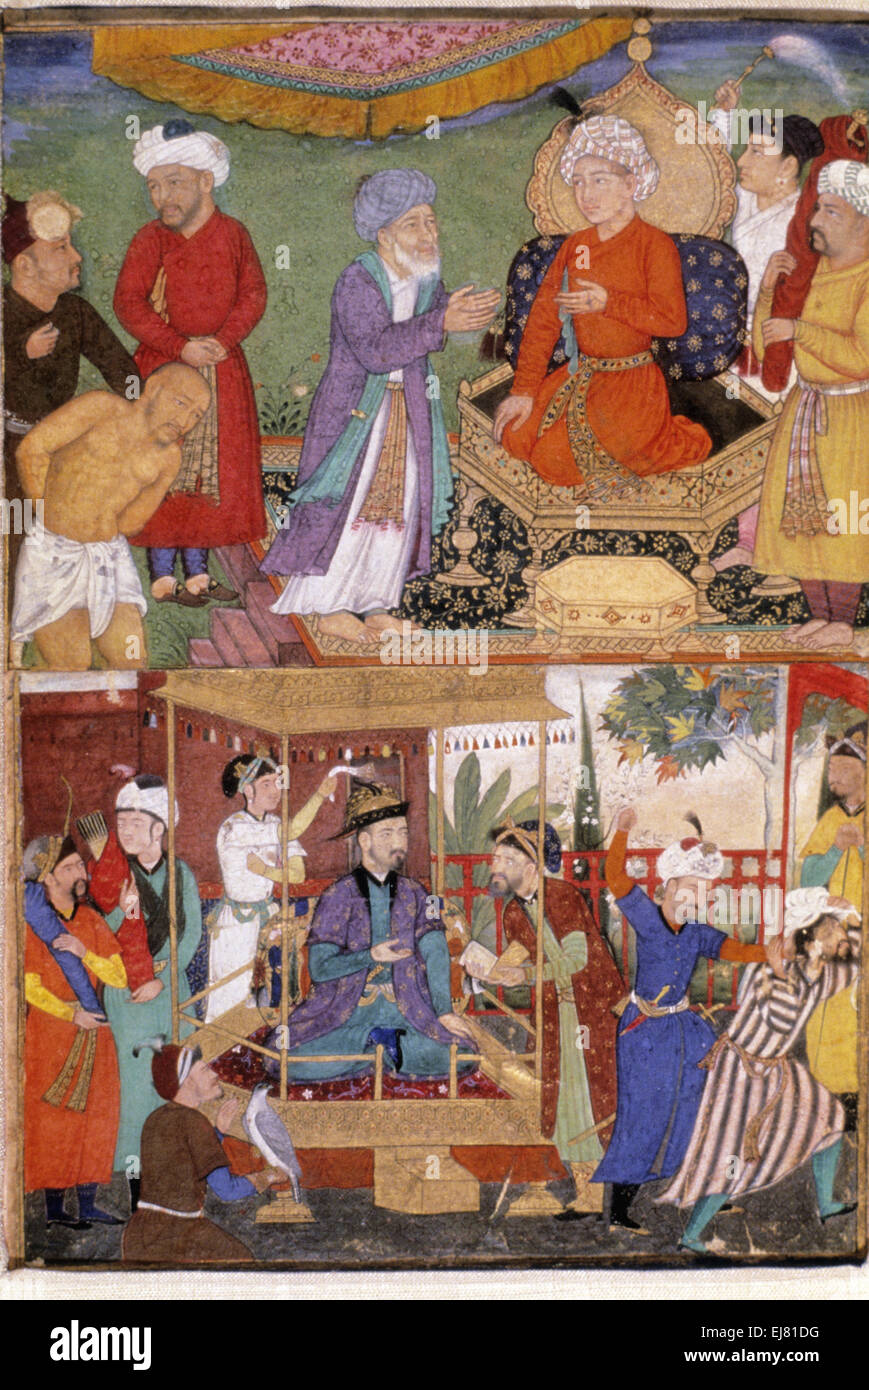 A criminal is condemned and below- An imposter is expelled. Mughal miniature painting circa 1600 A.D. India - Stock Image